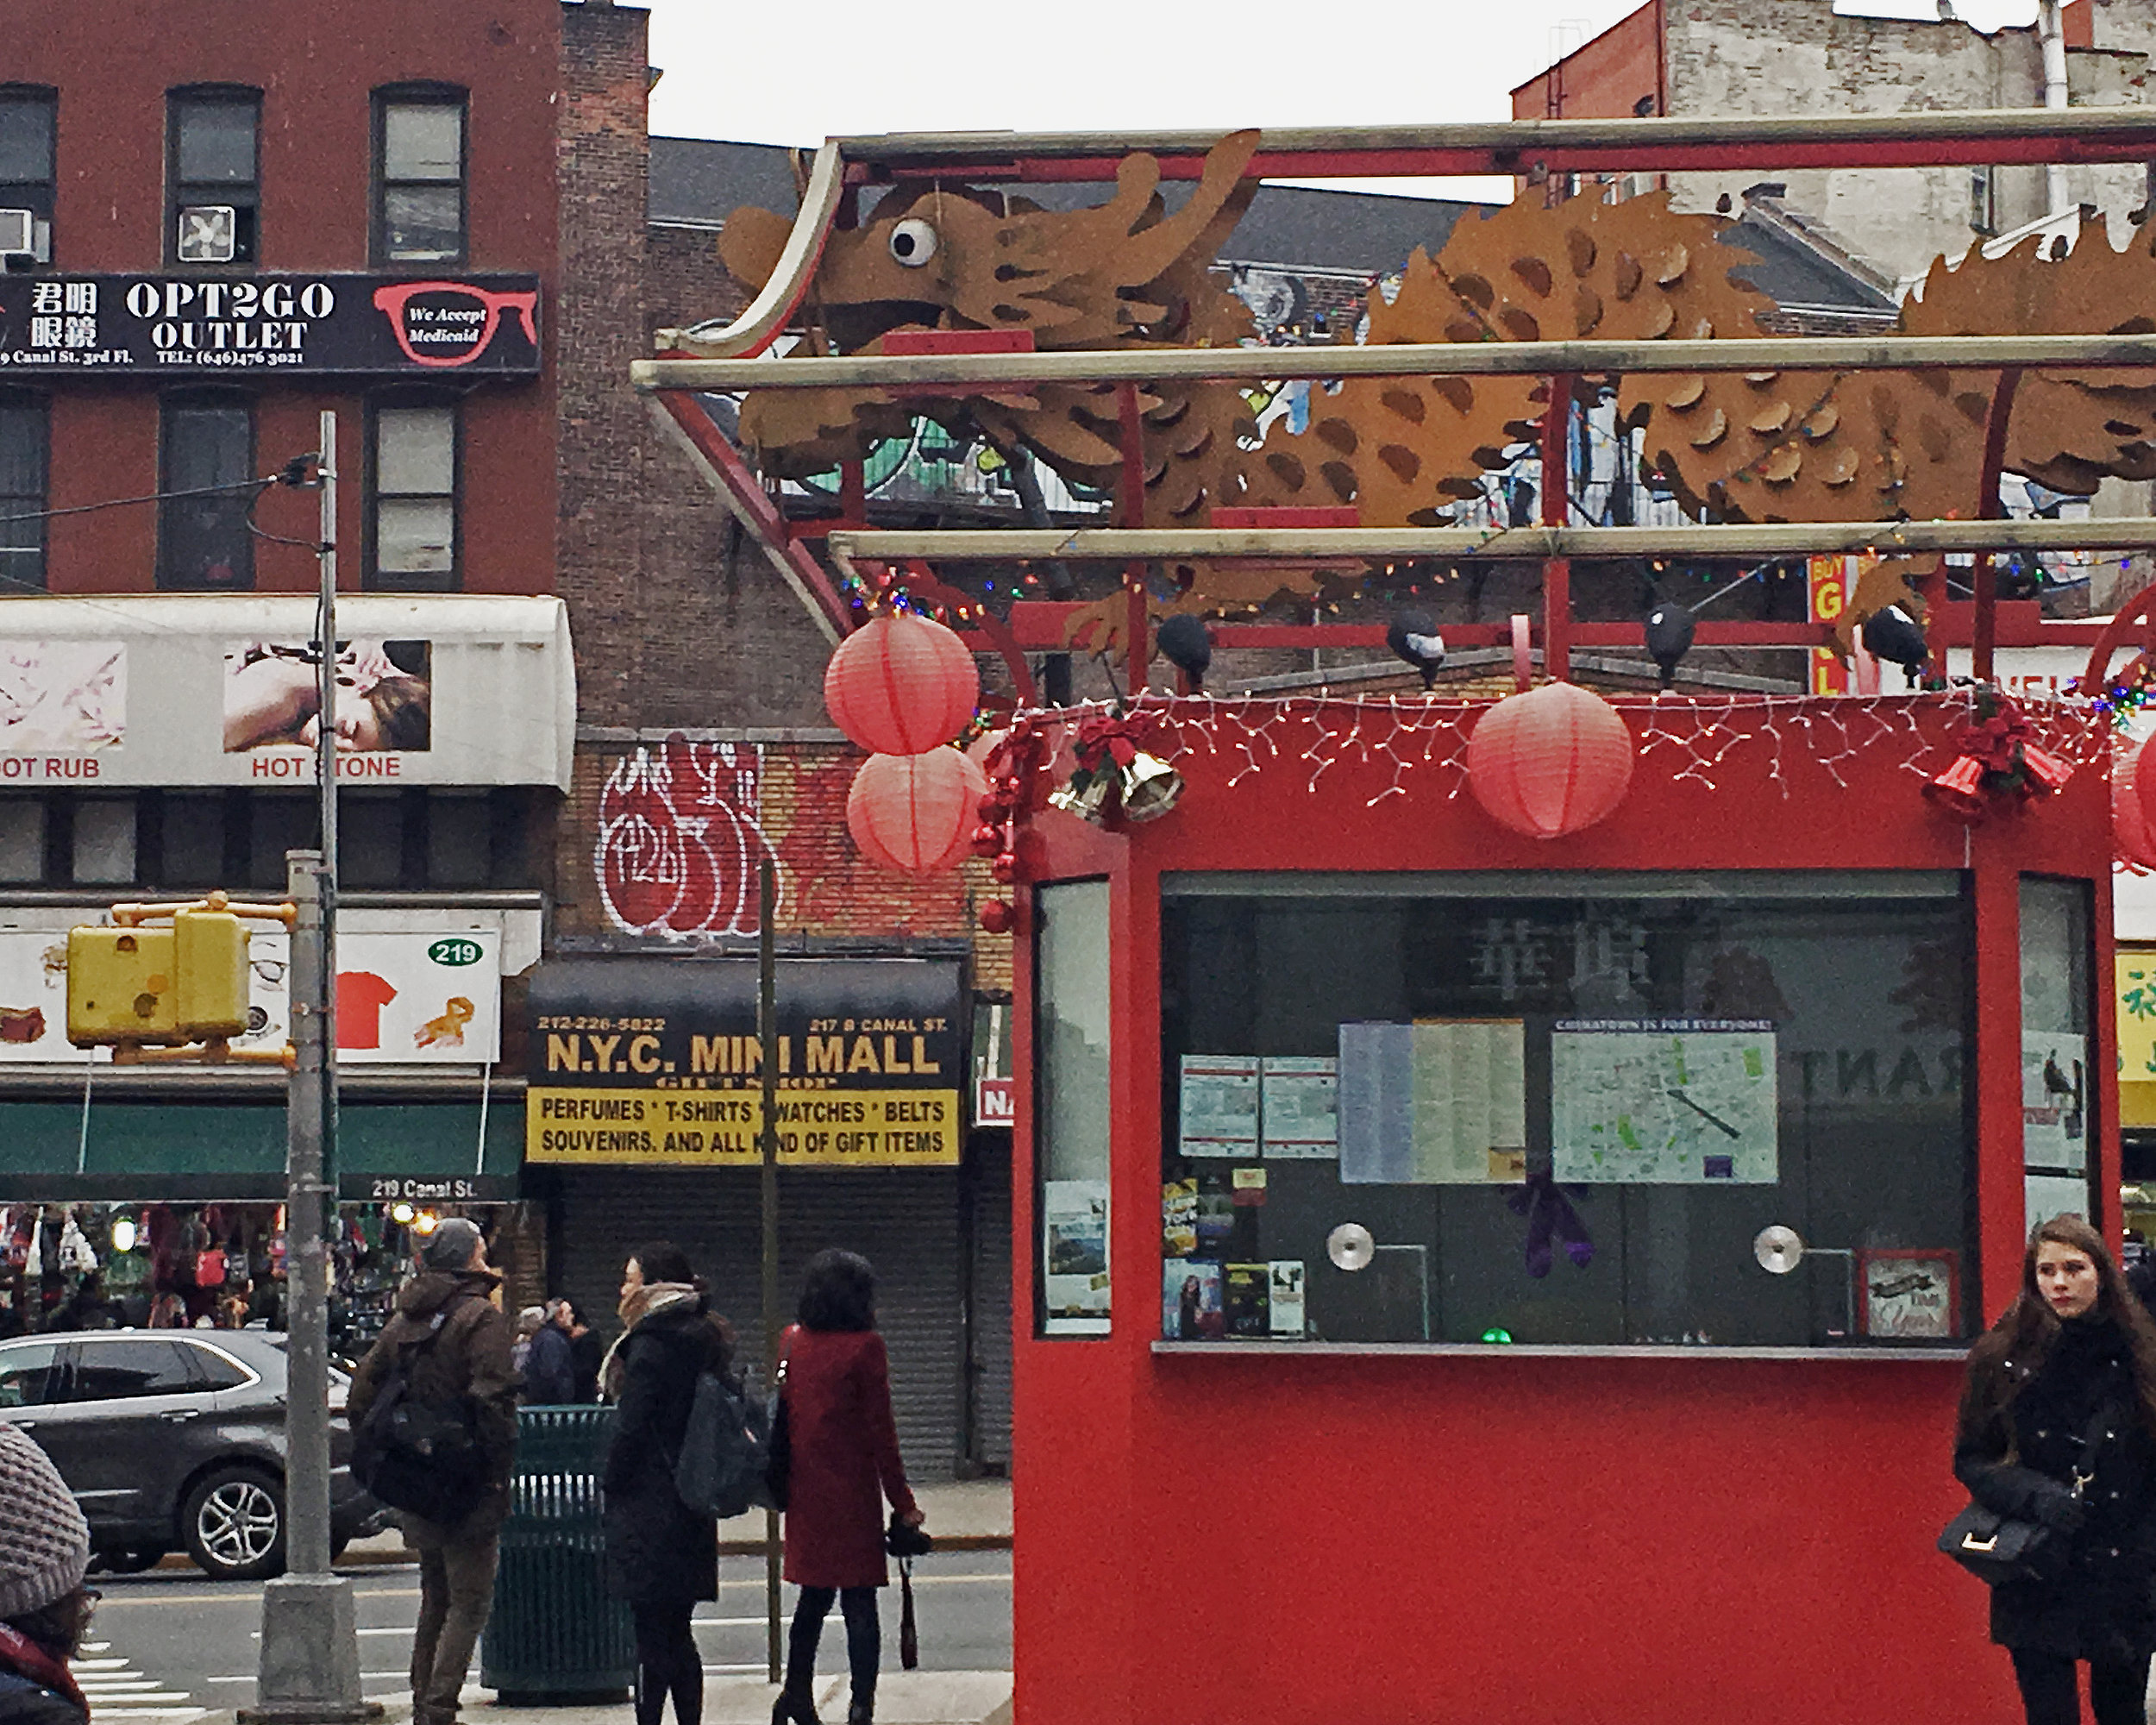 Existing Chinatown Information Kiosk